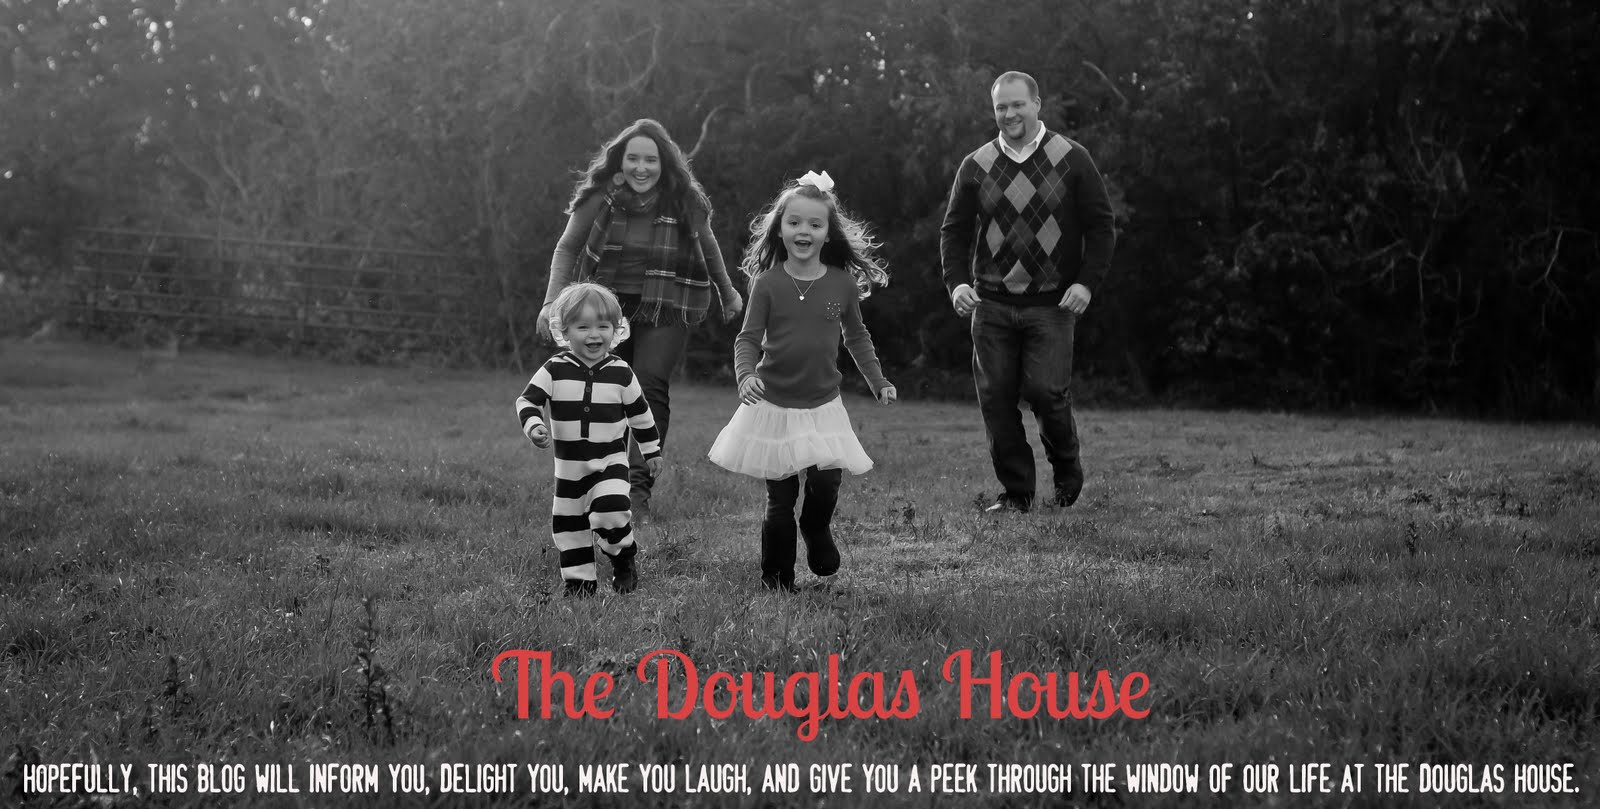 The Douglas House